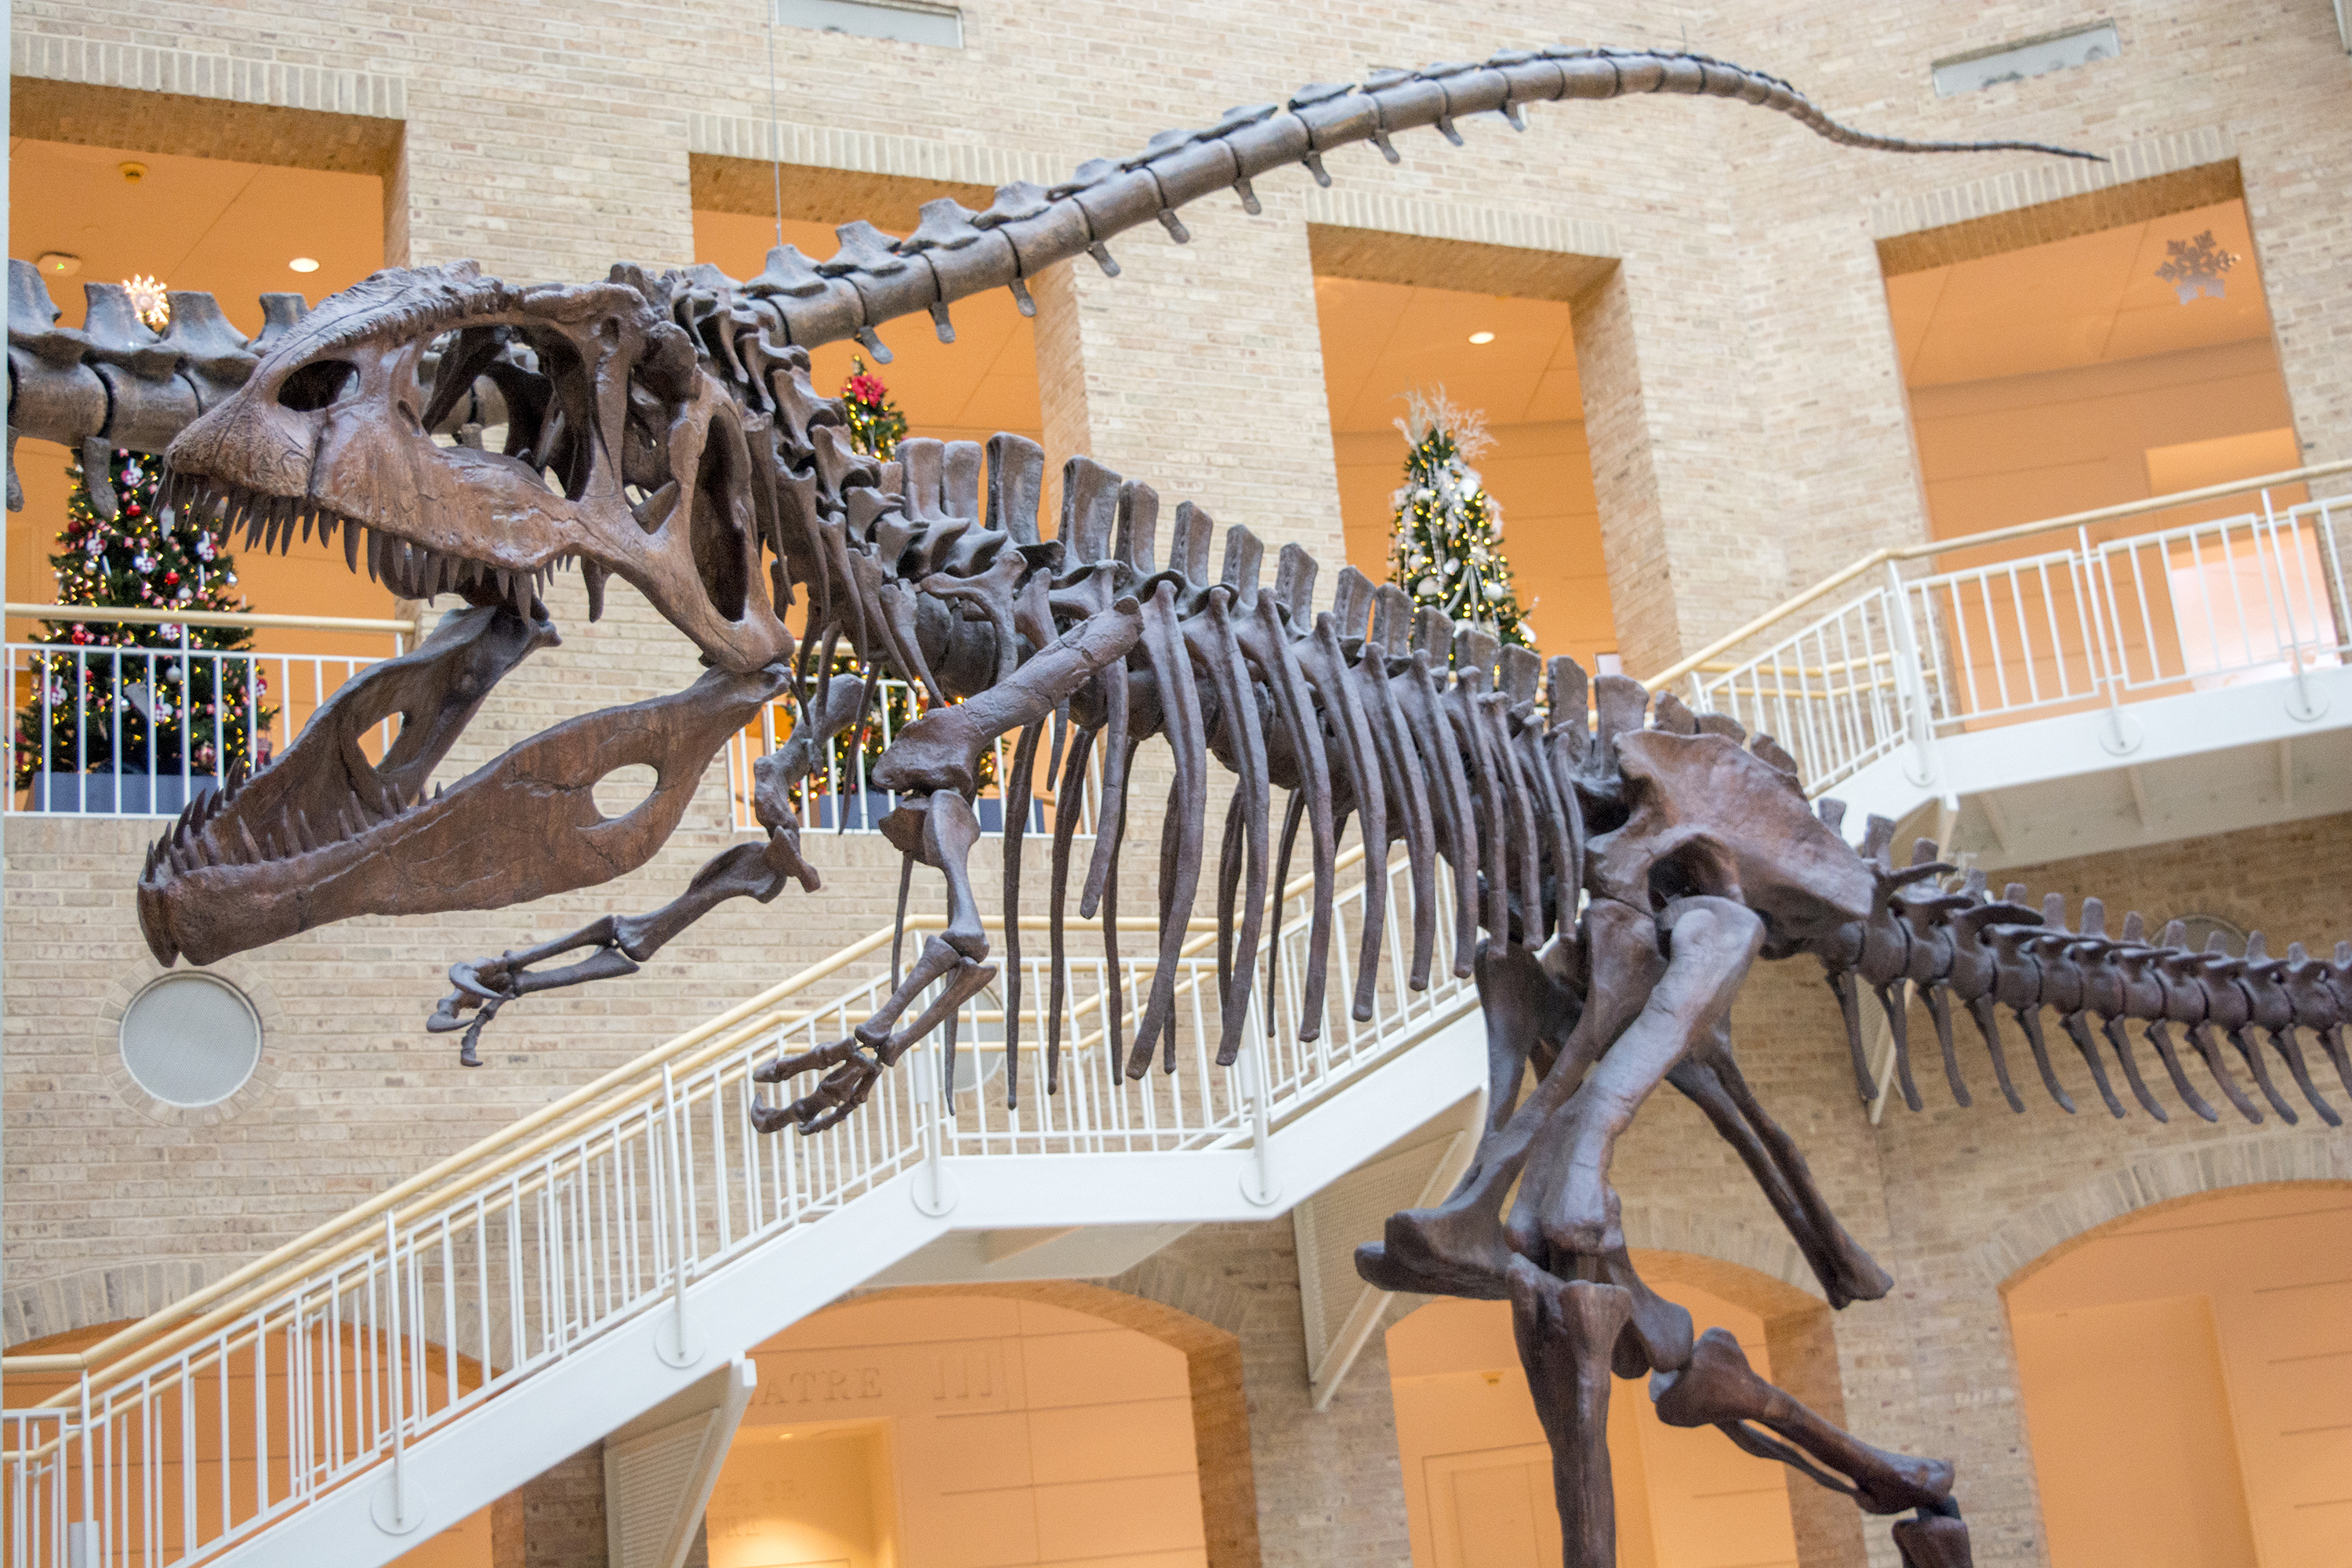 Dinosaur skeleton in front of festive Christmas trees at Winter Wonderland at Fernbank Museum of Natural History